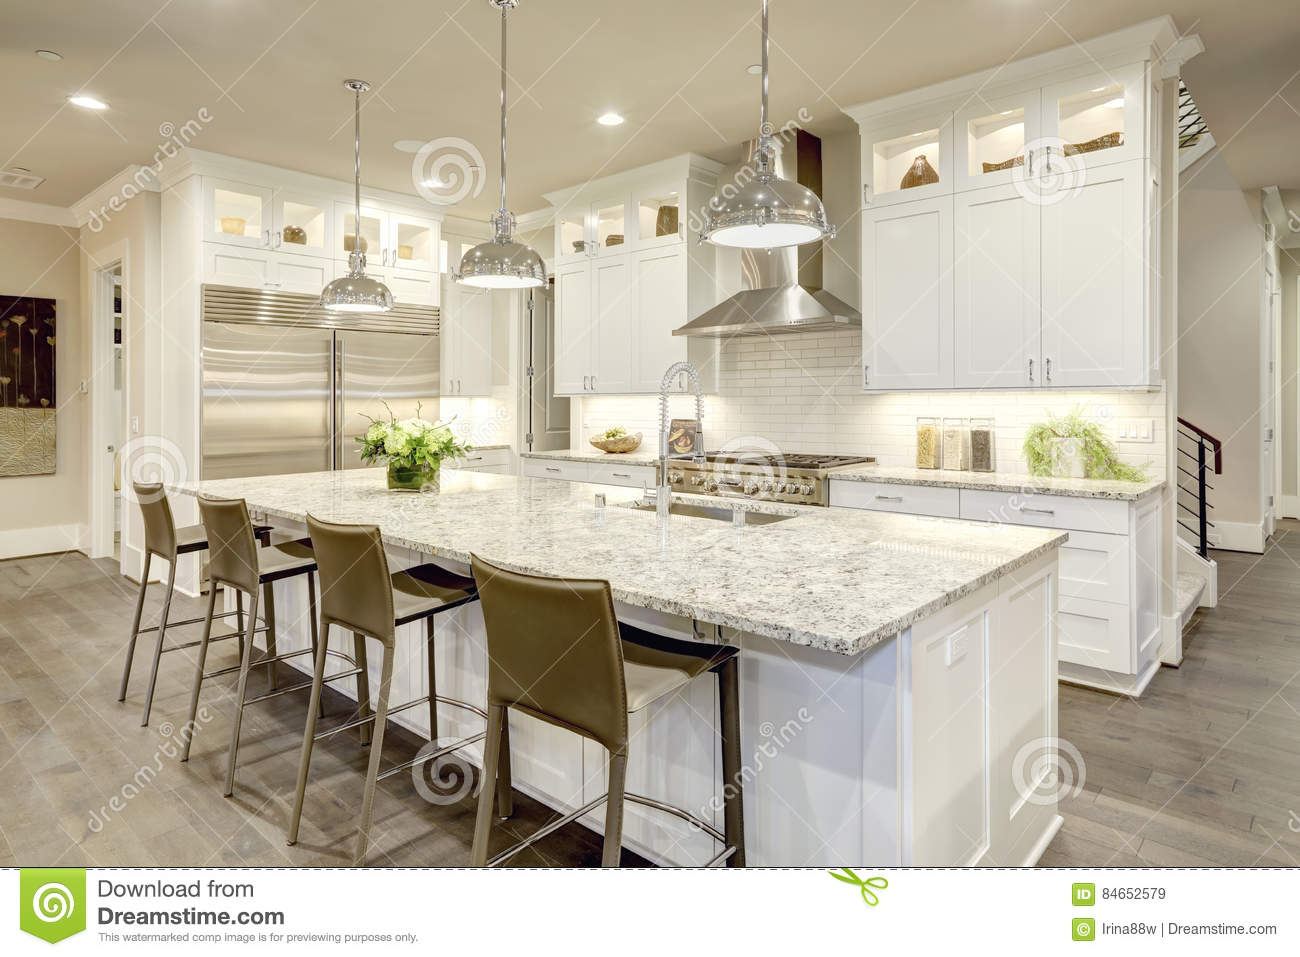 White Kitchen Design In New Luxurious Home Stock Image Image Of Design Modern 84652579